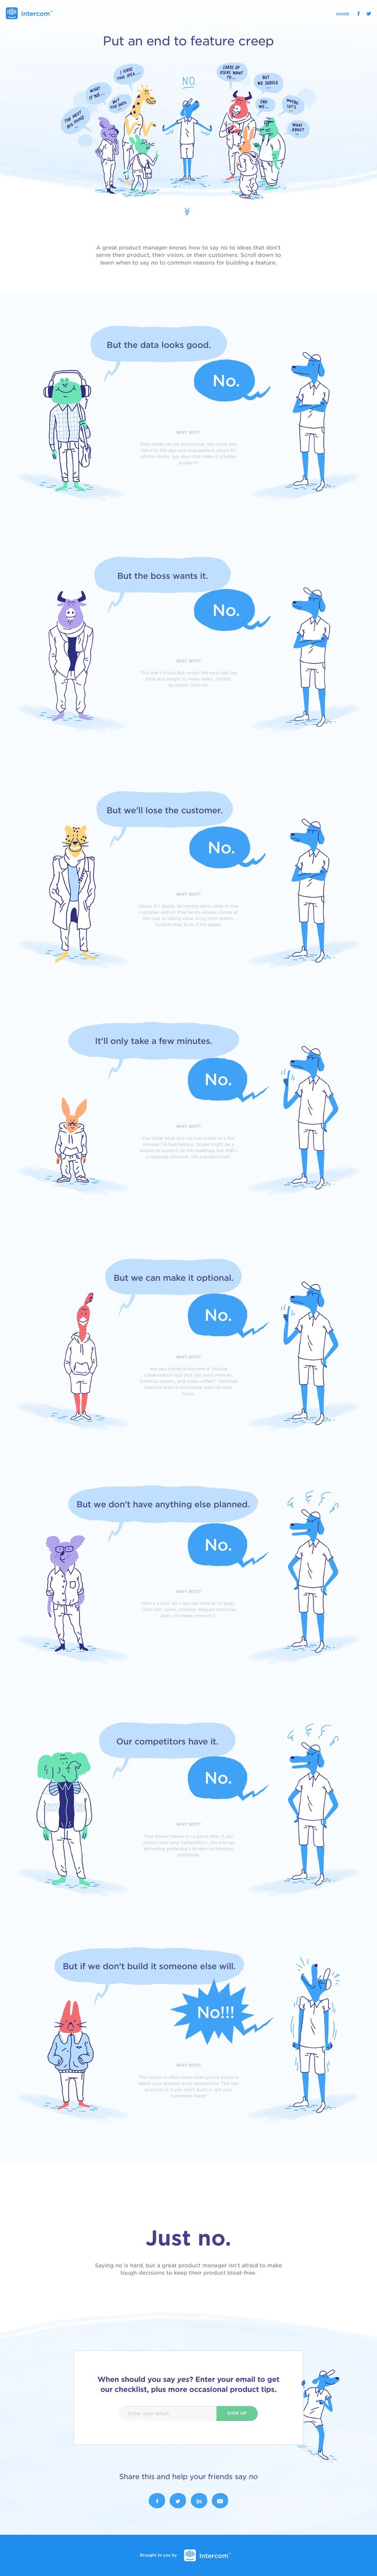 Responsive One Pager with some fun illustrated animals encouraging an end to feature creep and bad feature requests. Neat little bit of marketing this by Intercom.